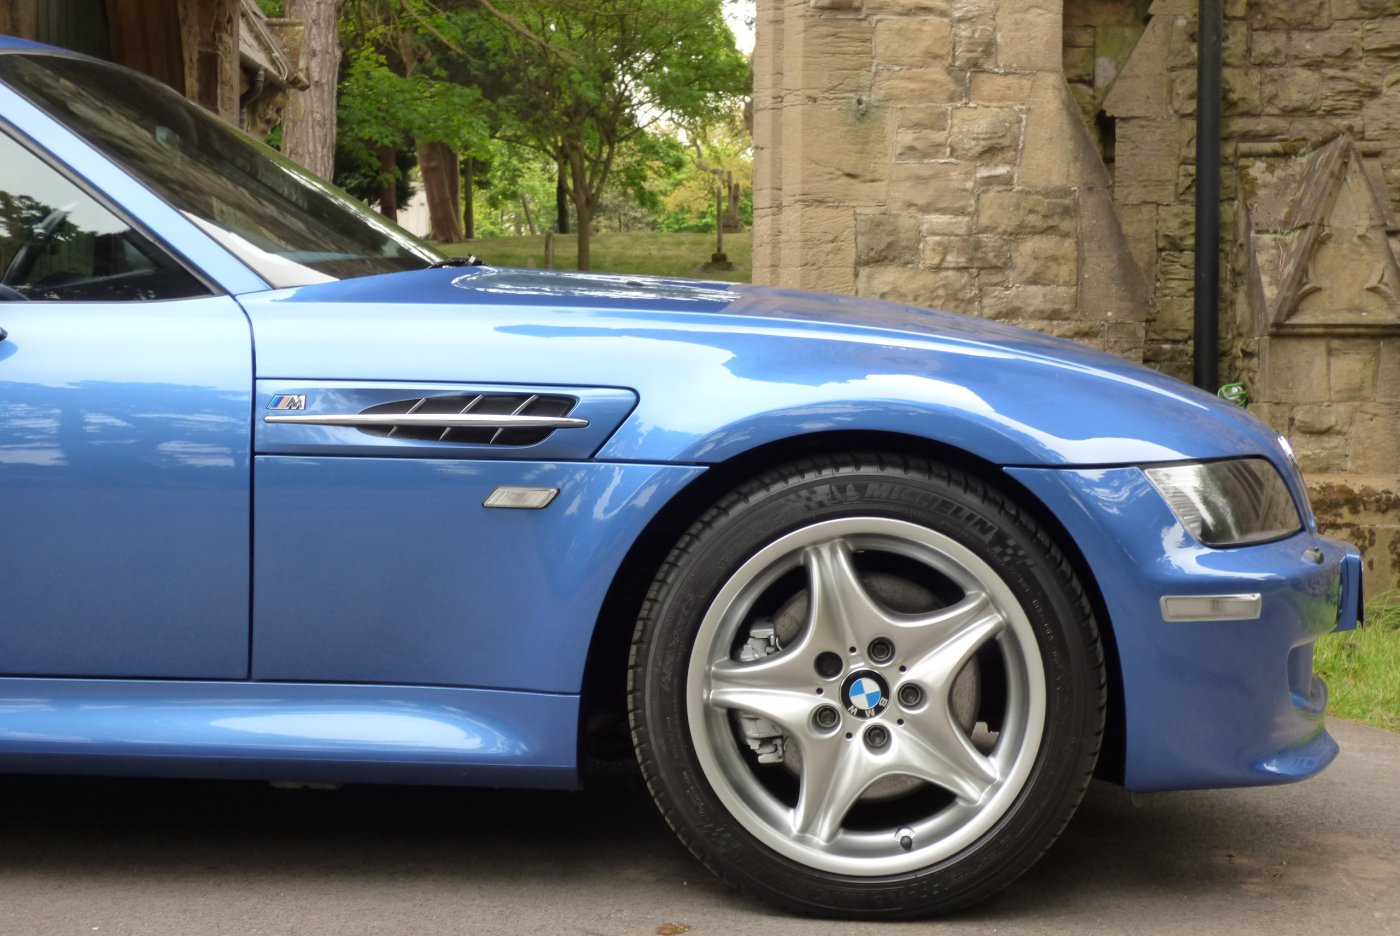 Bmw Z3m Coupe For Sale Uk Bmw Z3m Coupe Parkway Bmw Z3m 3